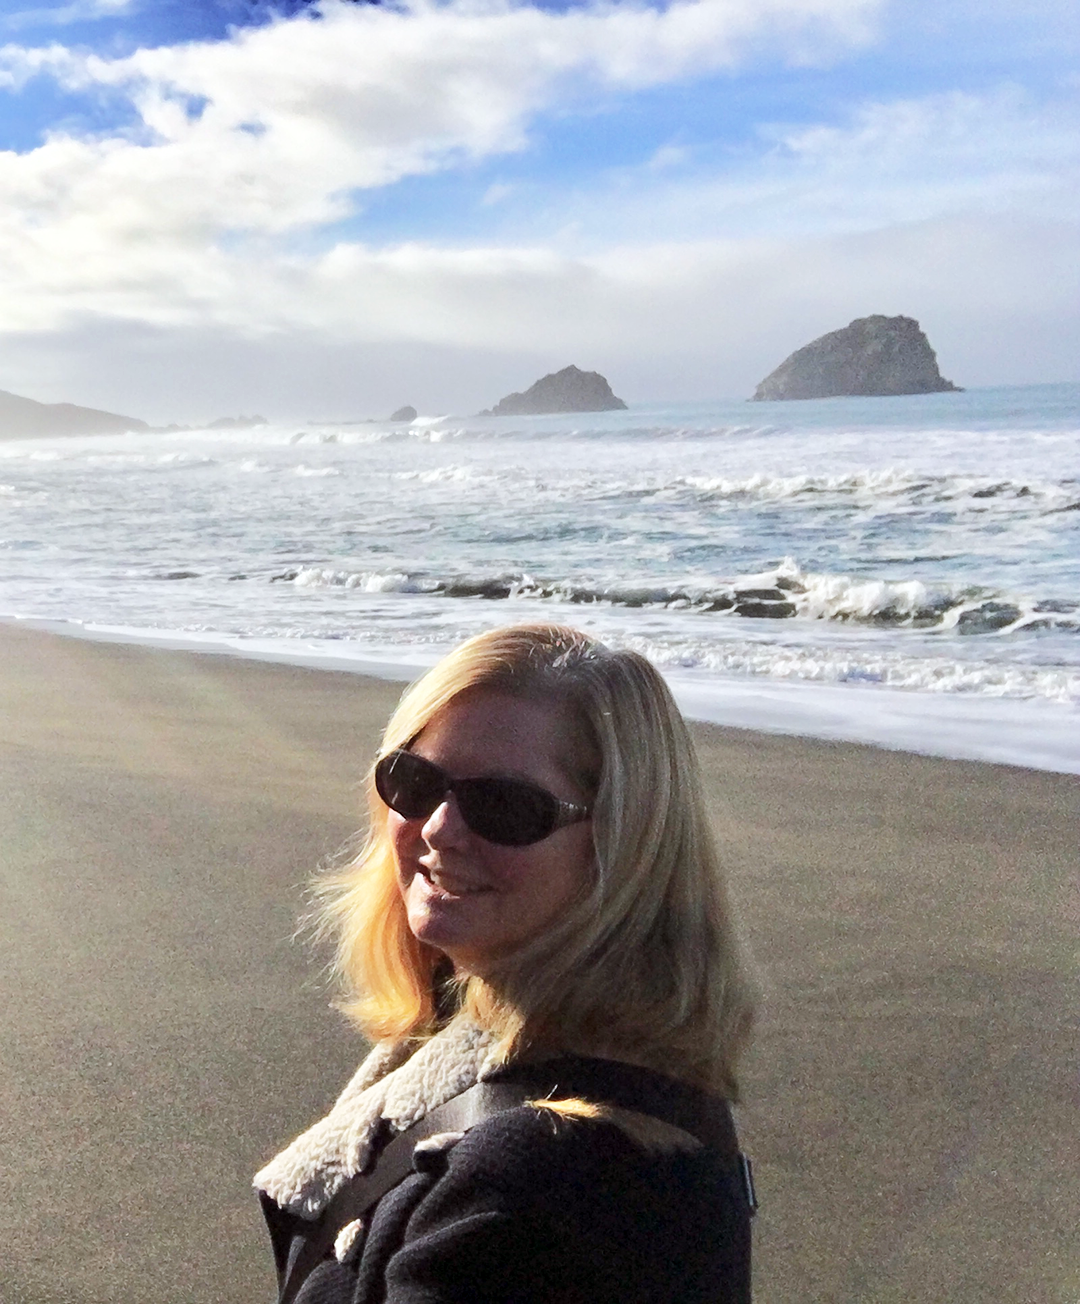 Dr. Margaret Chisolm makes time for a walk outside in the fresh ocean air.